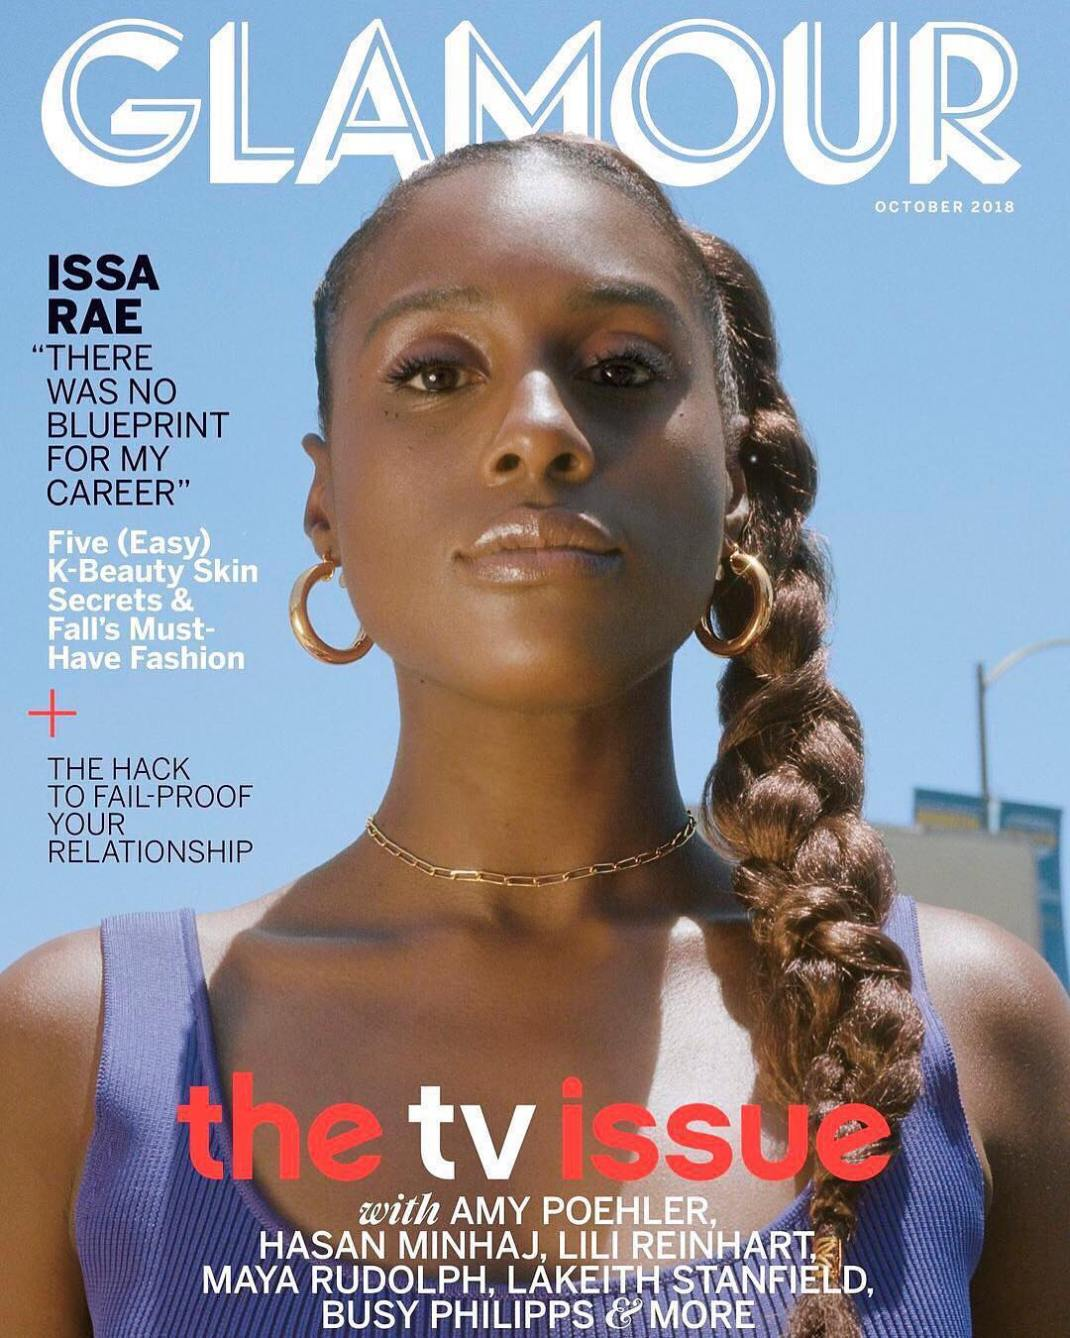 Issa Rae Glamour Magazine cover